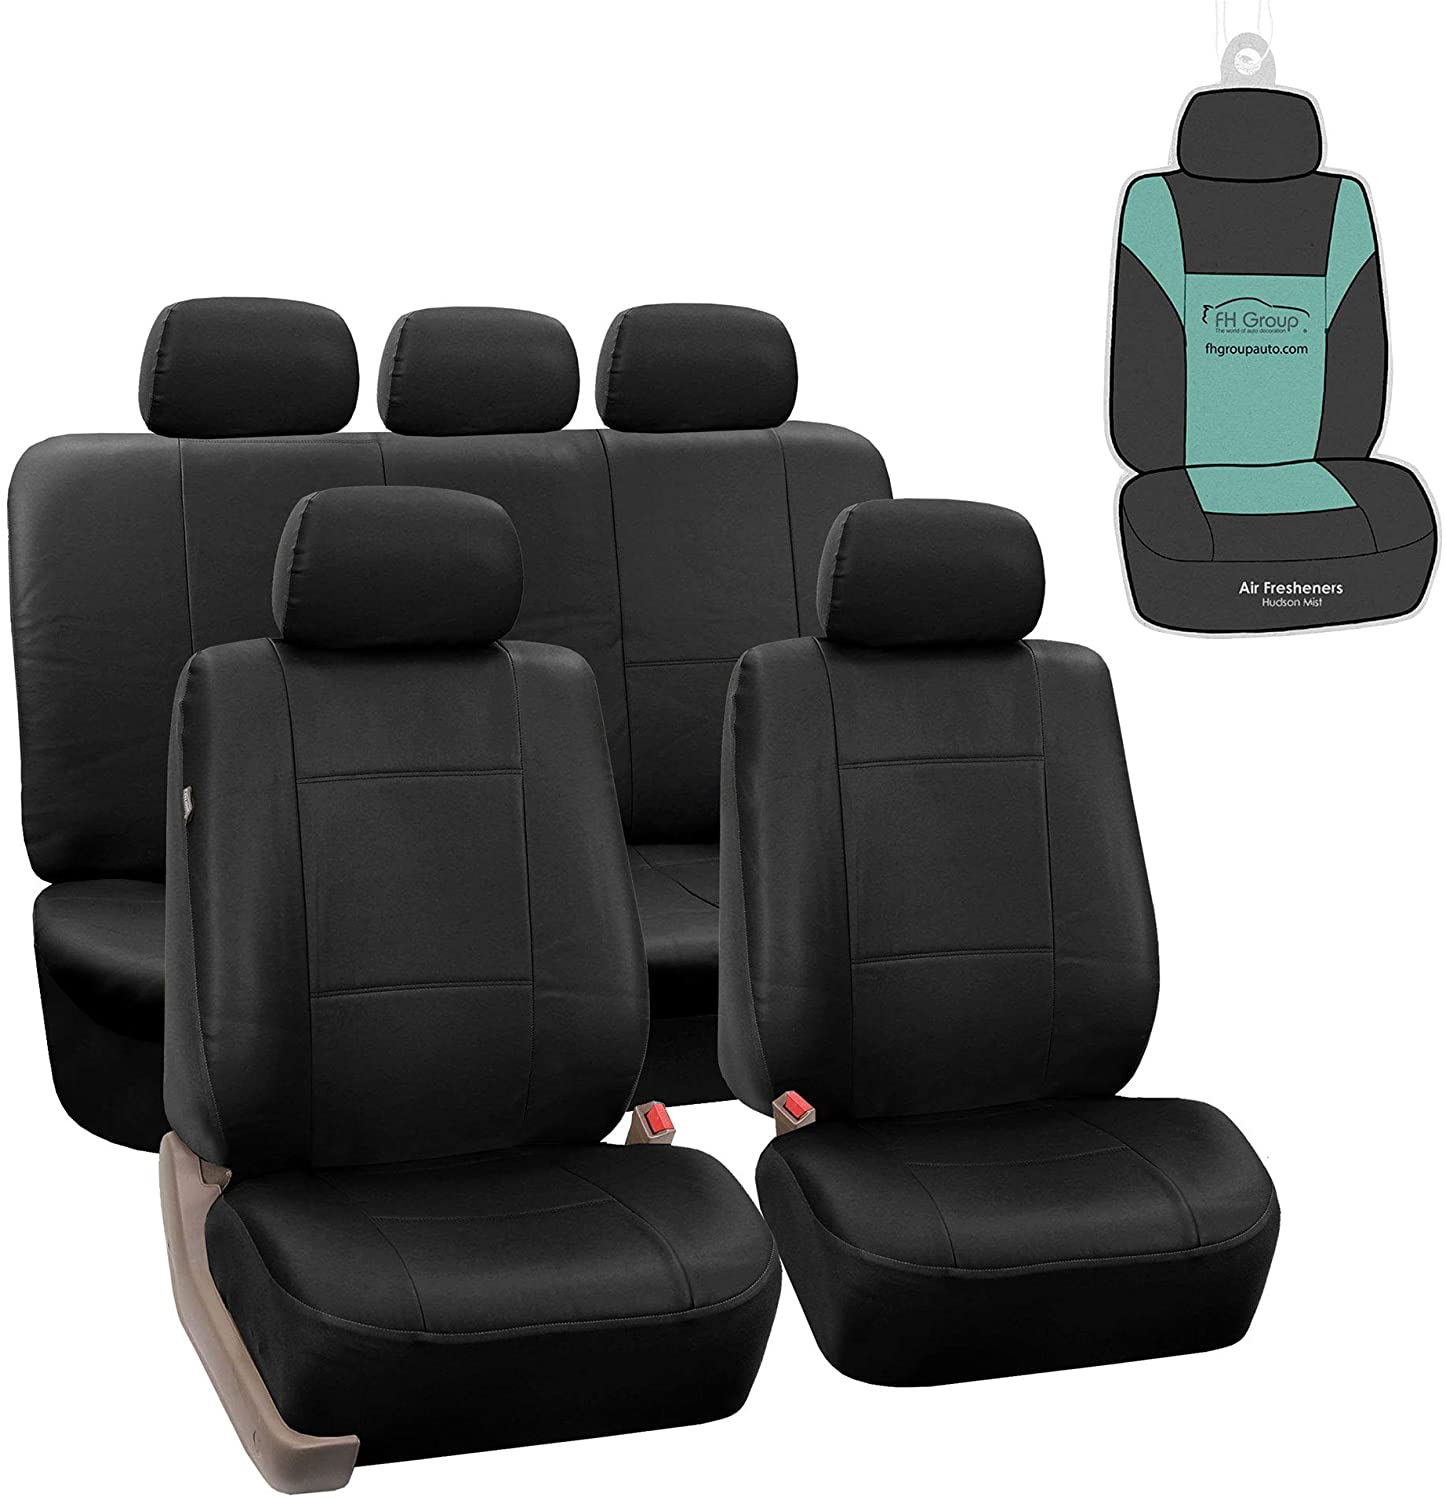 Fh Pu002115 Classic Pu Leather Car Seat Covers Airbag Compatible And Split Bench Black Color Automotive Amazon Com